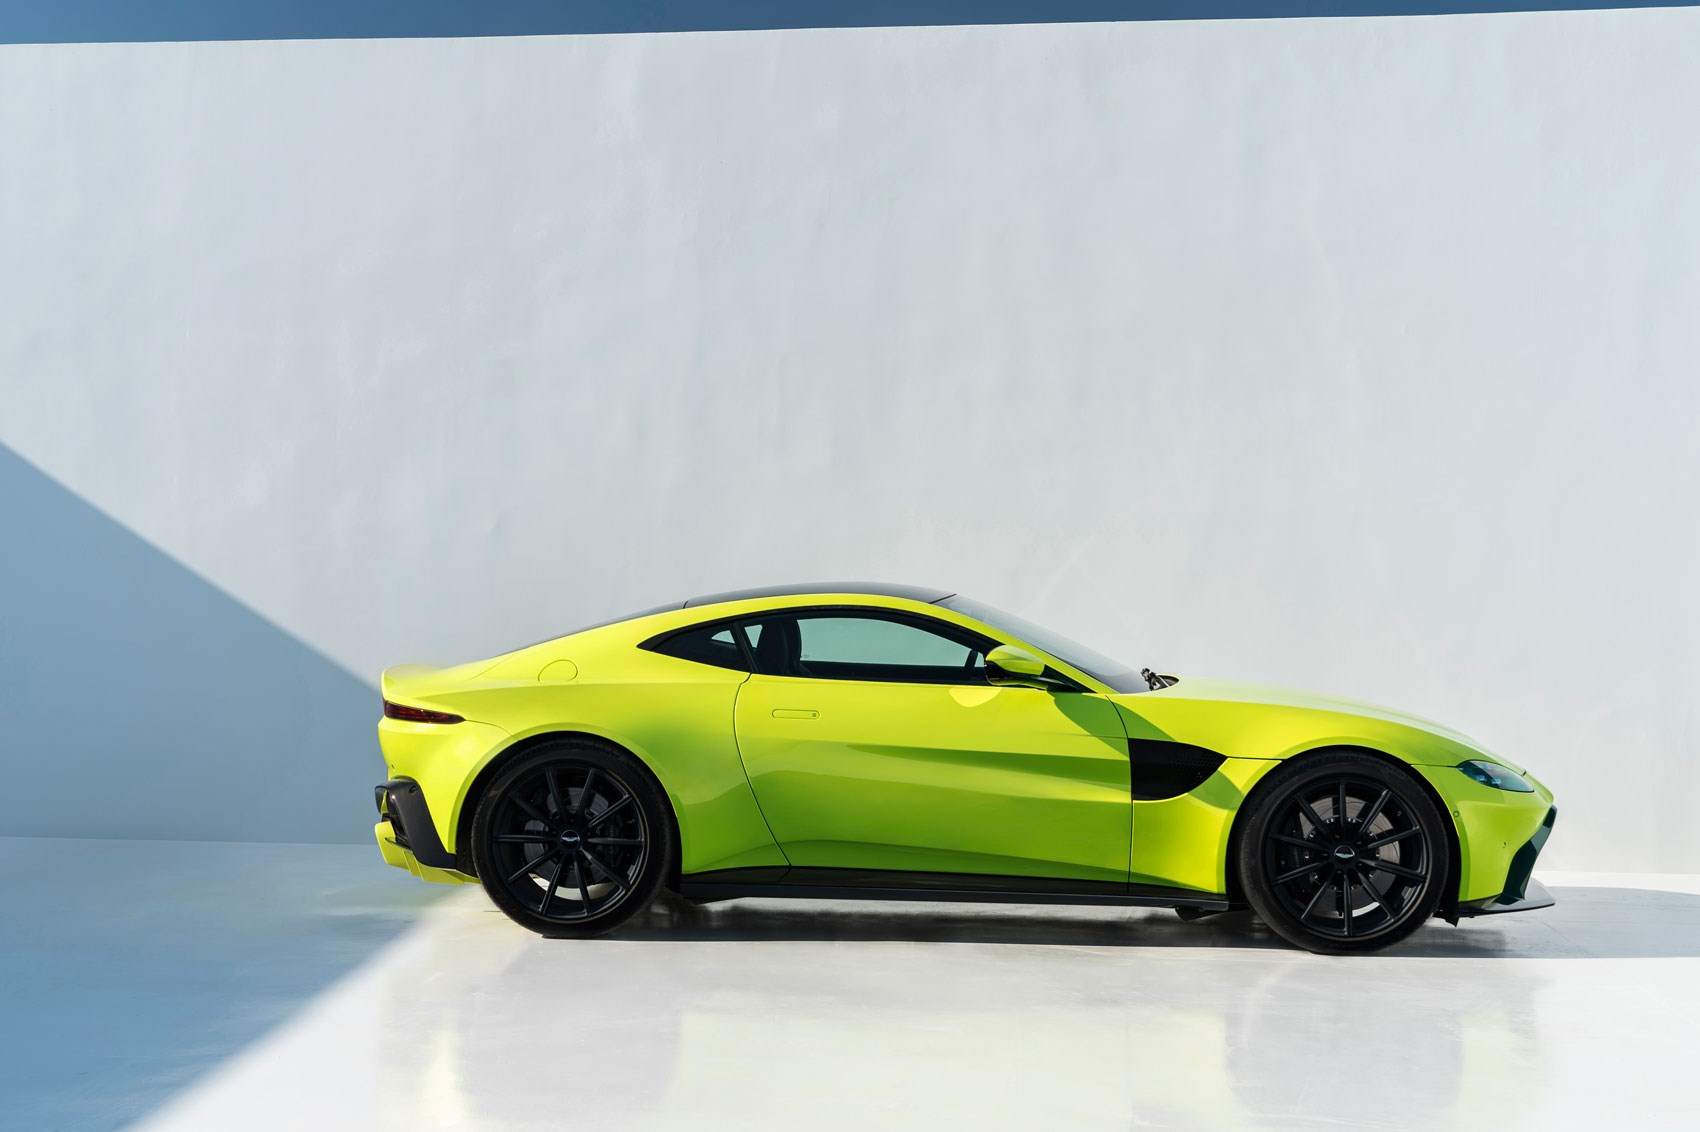 Side Profile Is Pert, Lithe: Hints Of DB10 In The New Aston Martin Vantage  Too